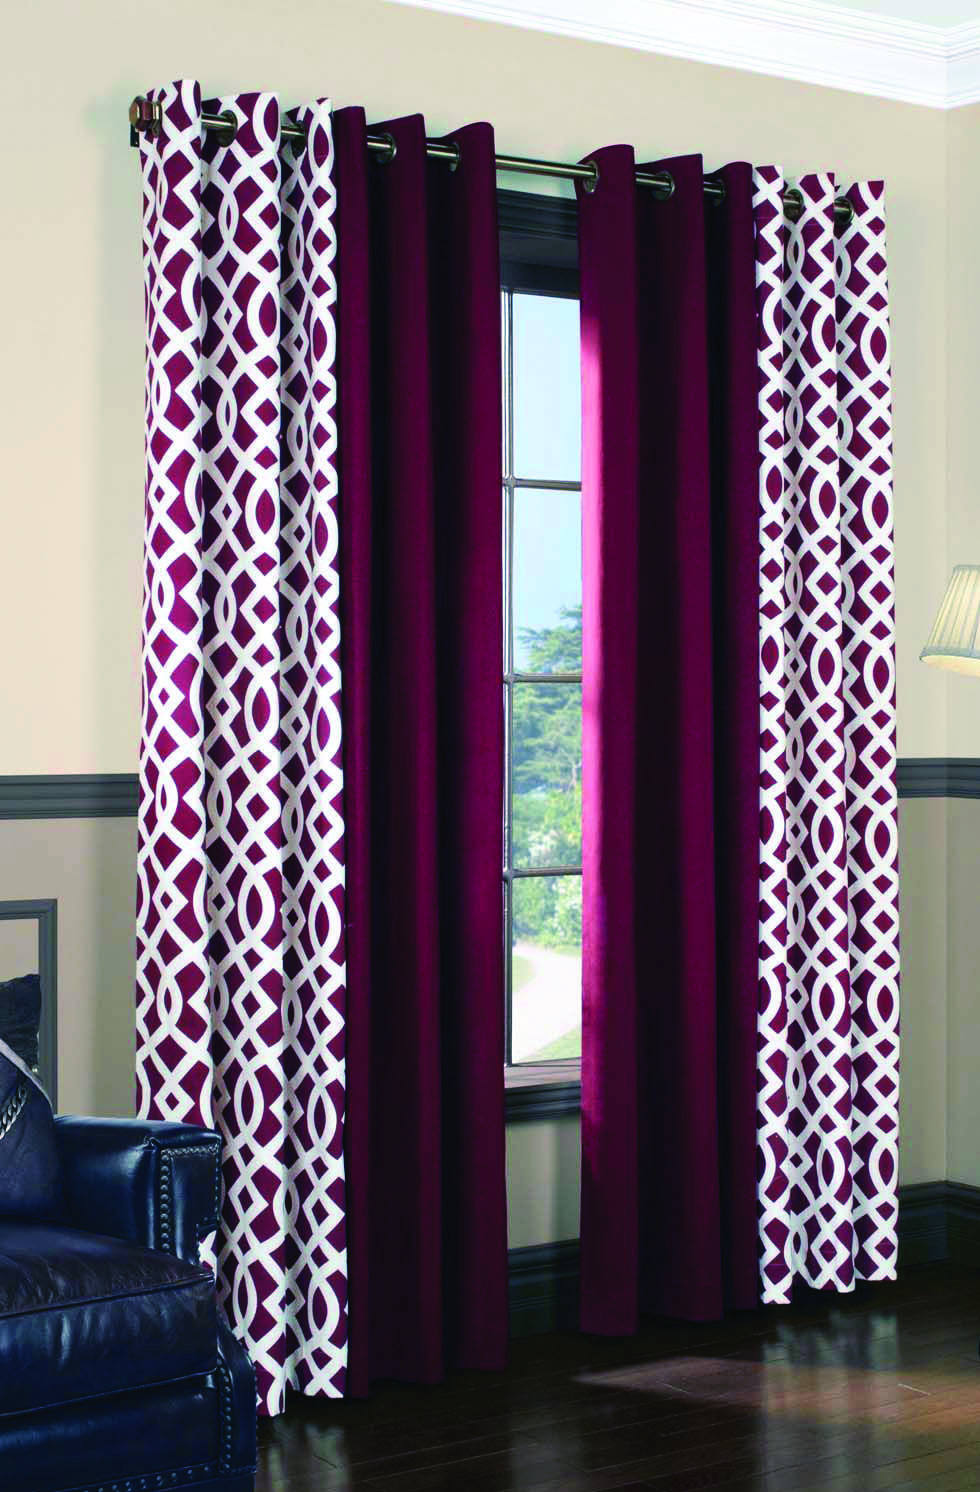 12 Residing Space Window Curtain Concepts To Promptly Update Your Inside Living Room Decor Curtains Purple Curtains Living Room Curtains Living Room